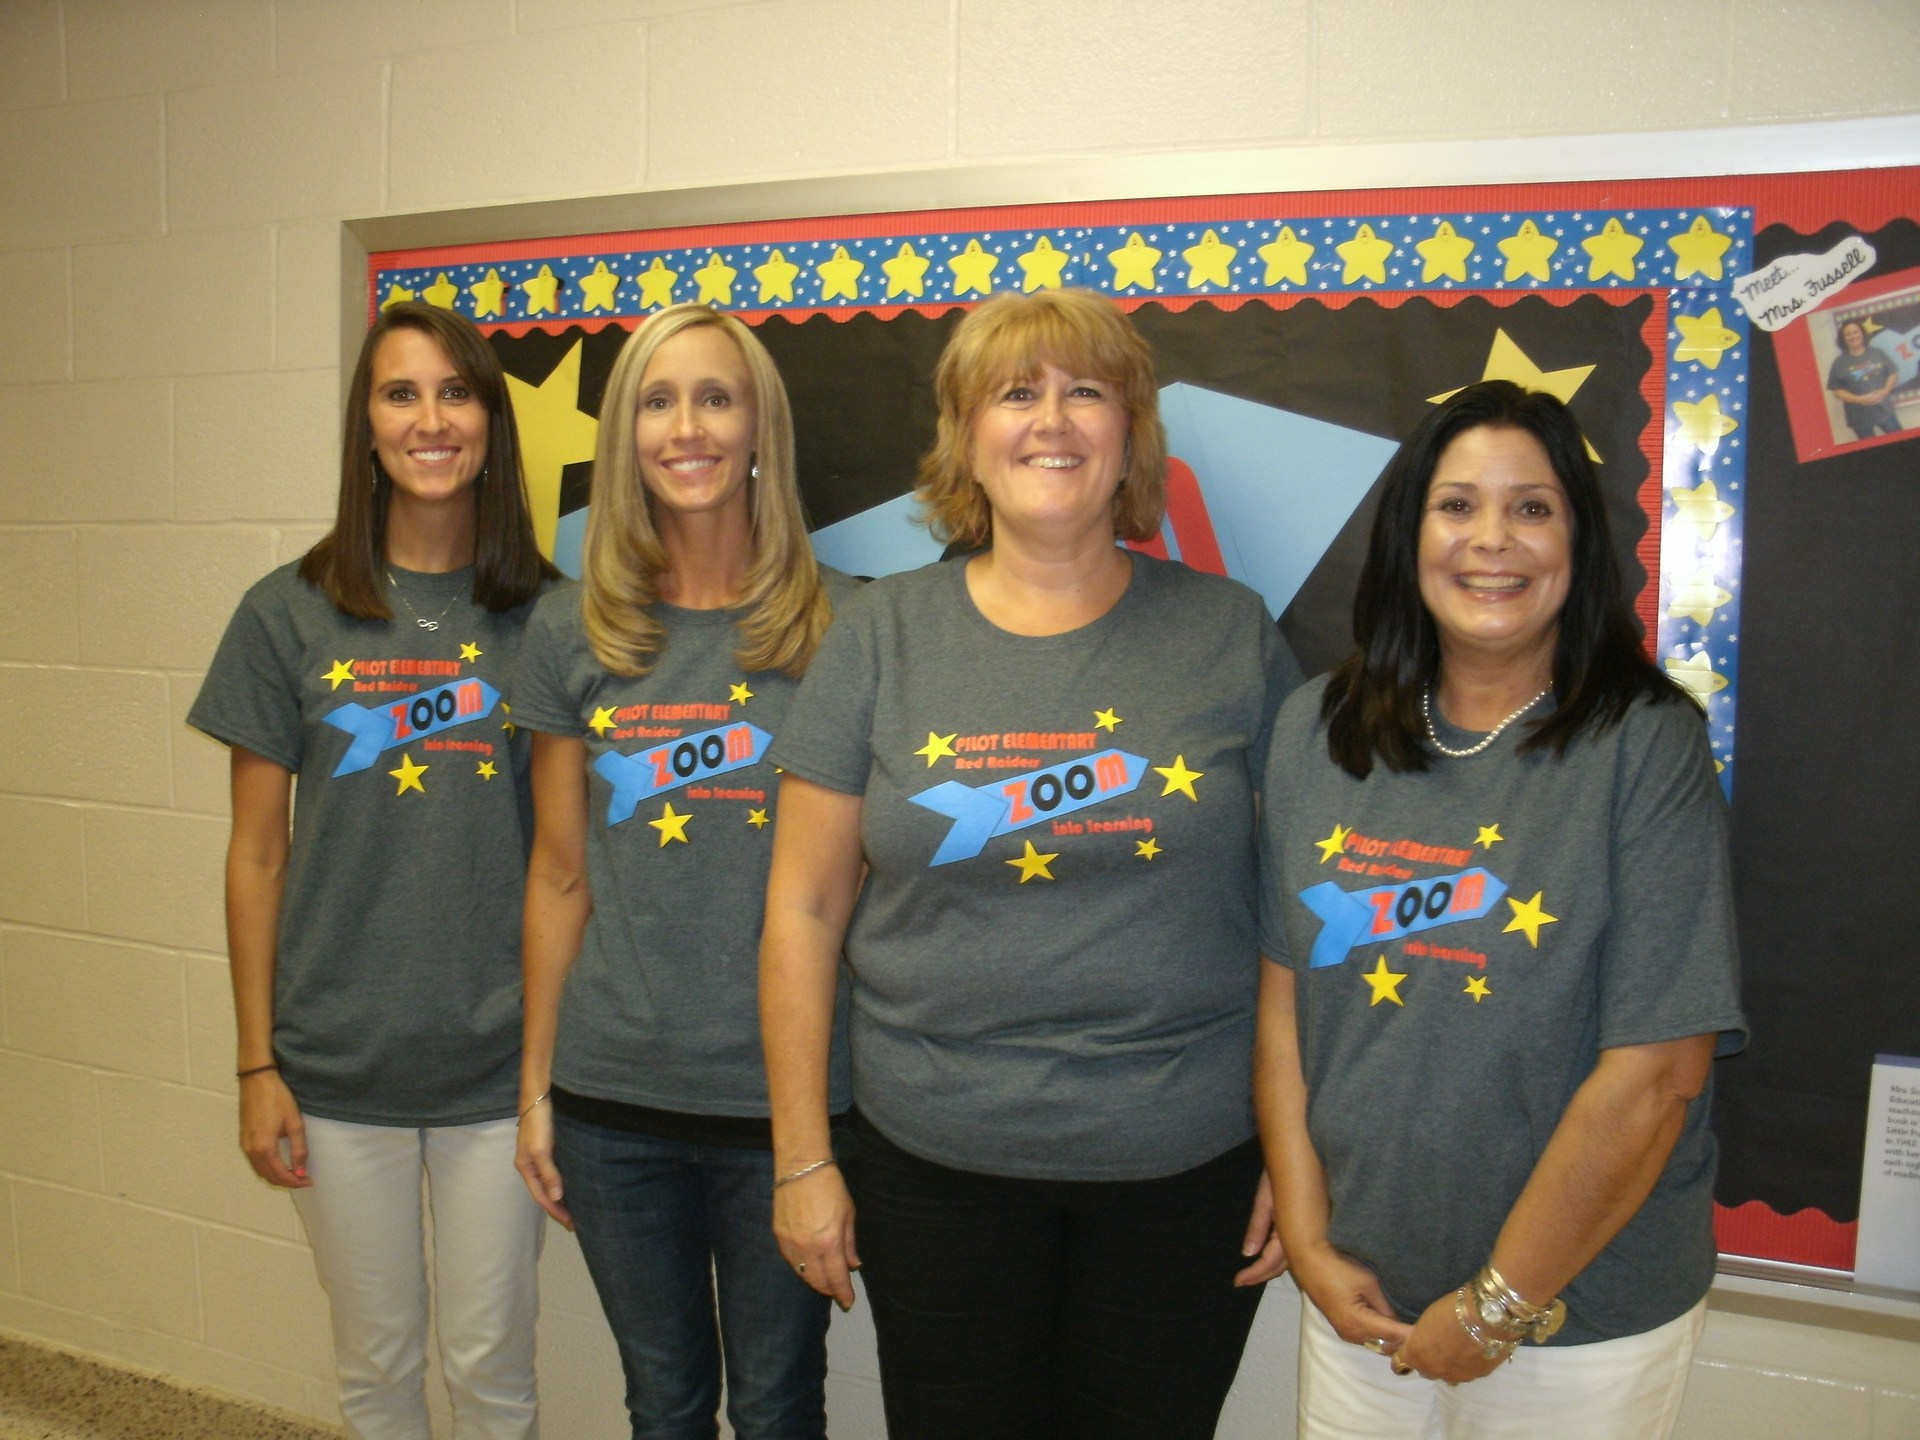 Four first grade teachers are standing in front of a bulletin board.